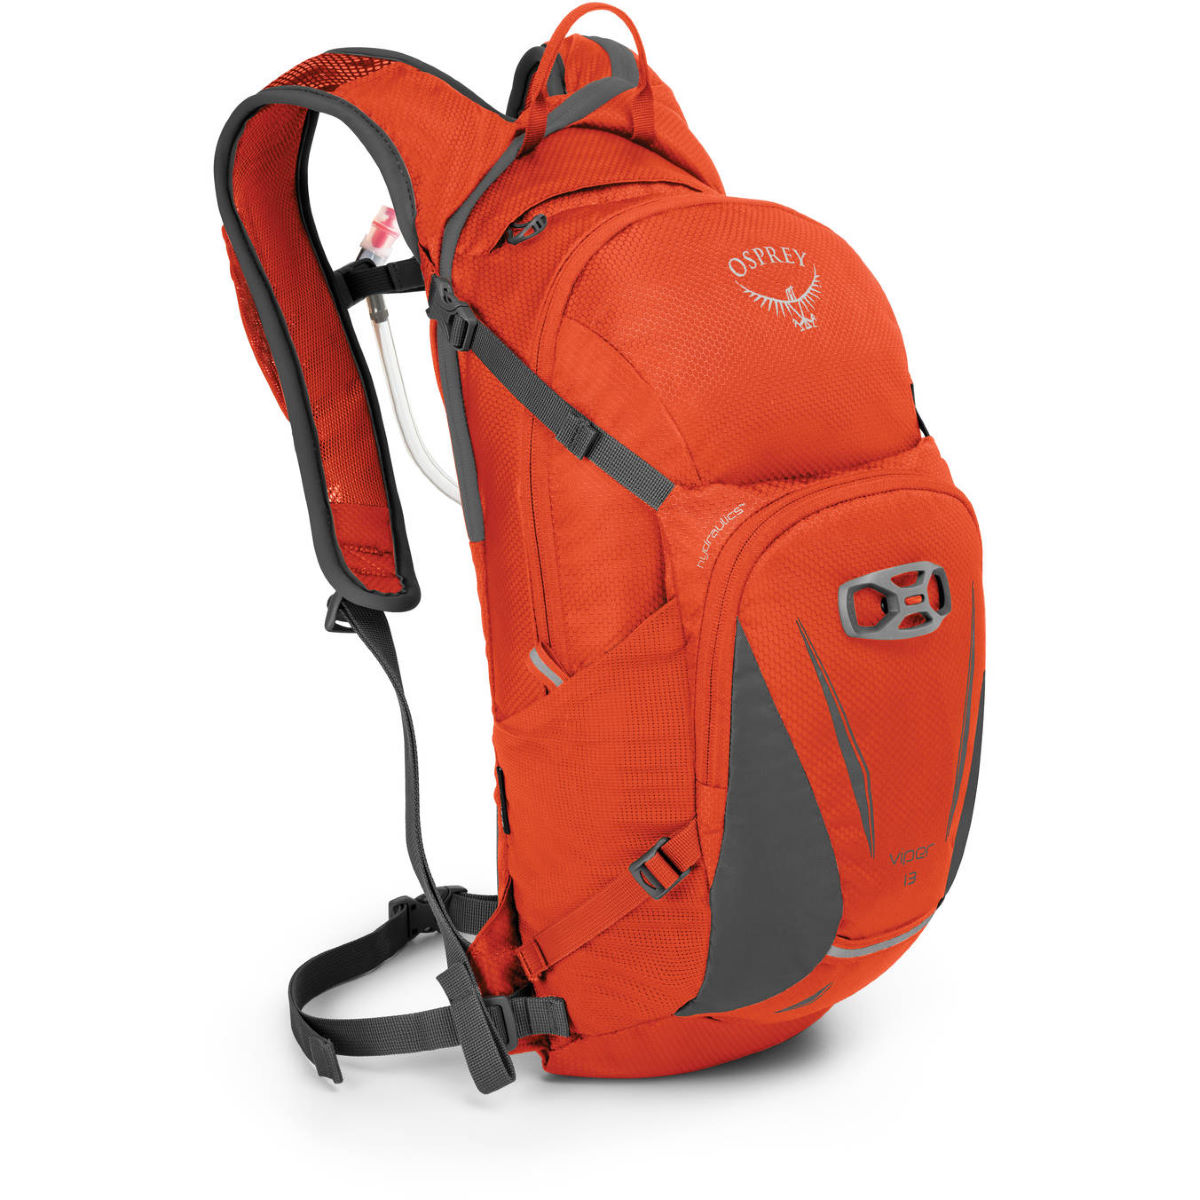 Sac d'hydratation Osprey Viper 13 - Taille unique Orange